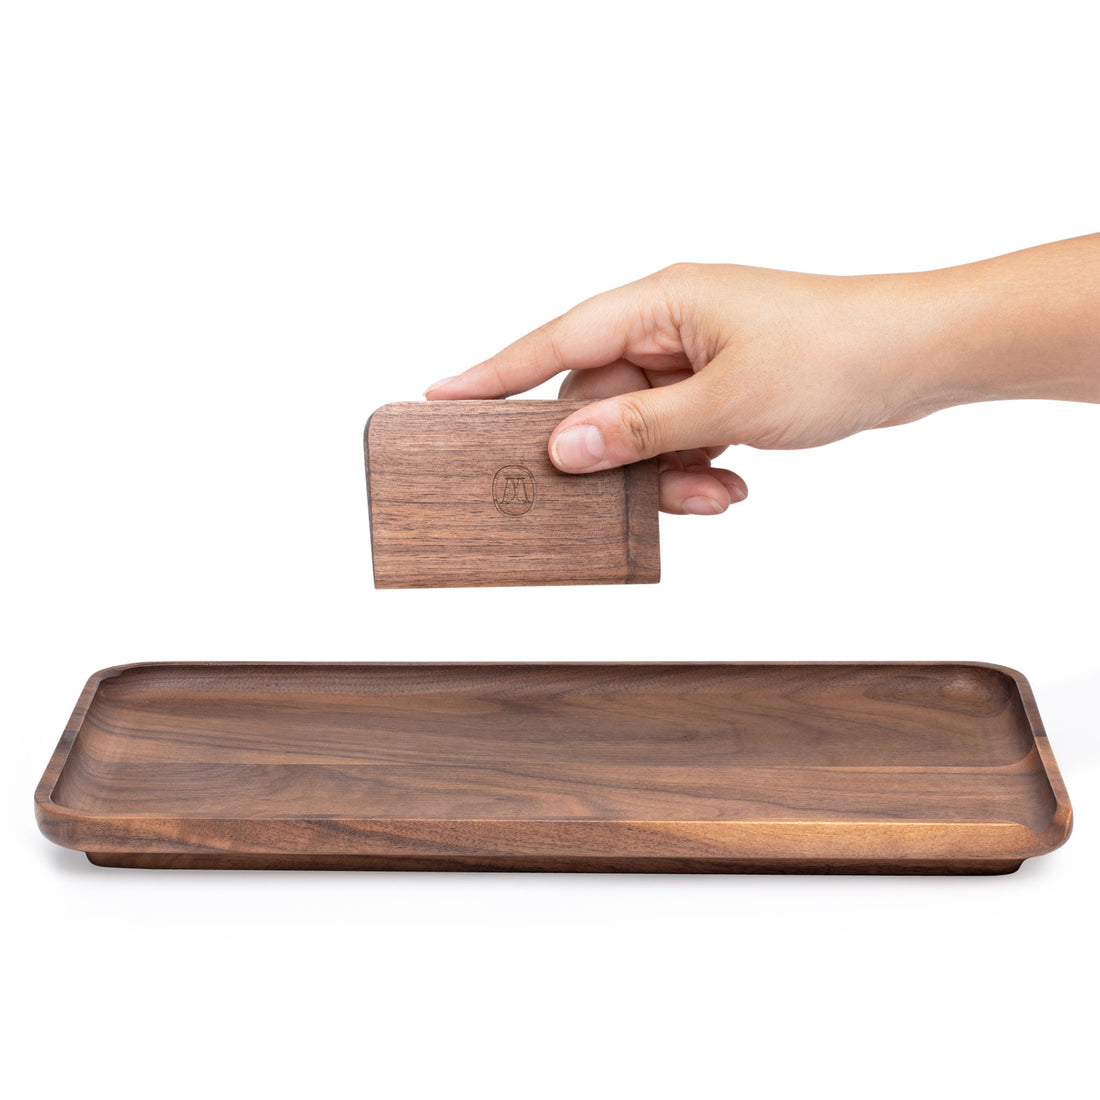 Marley Natural American Black Walnut Rolling Tray - Large